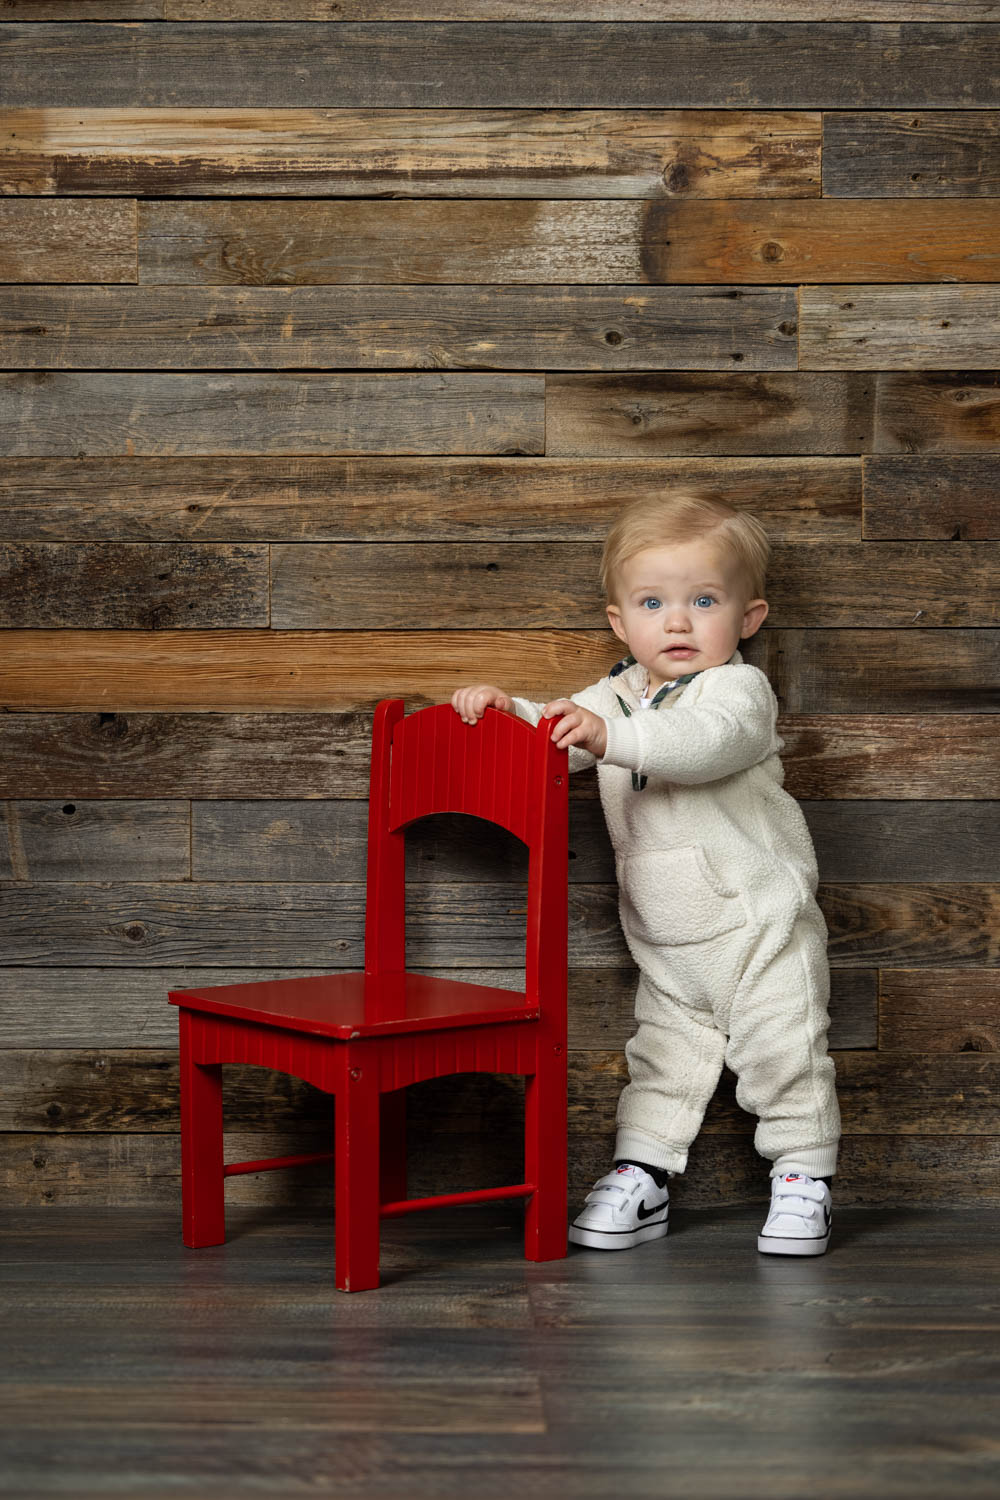 Little Arthur and his red chair